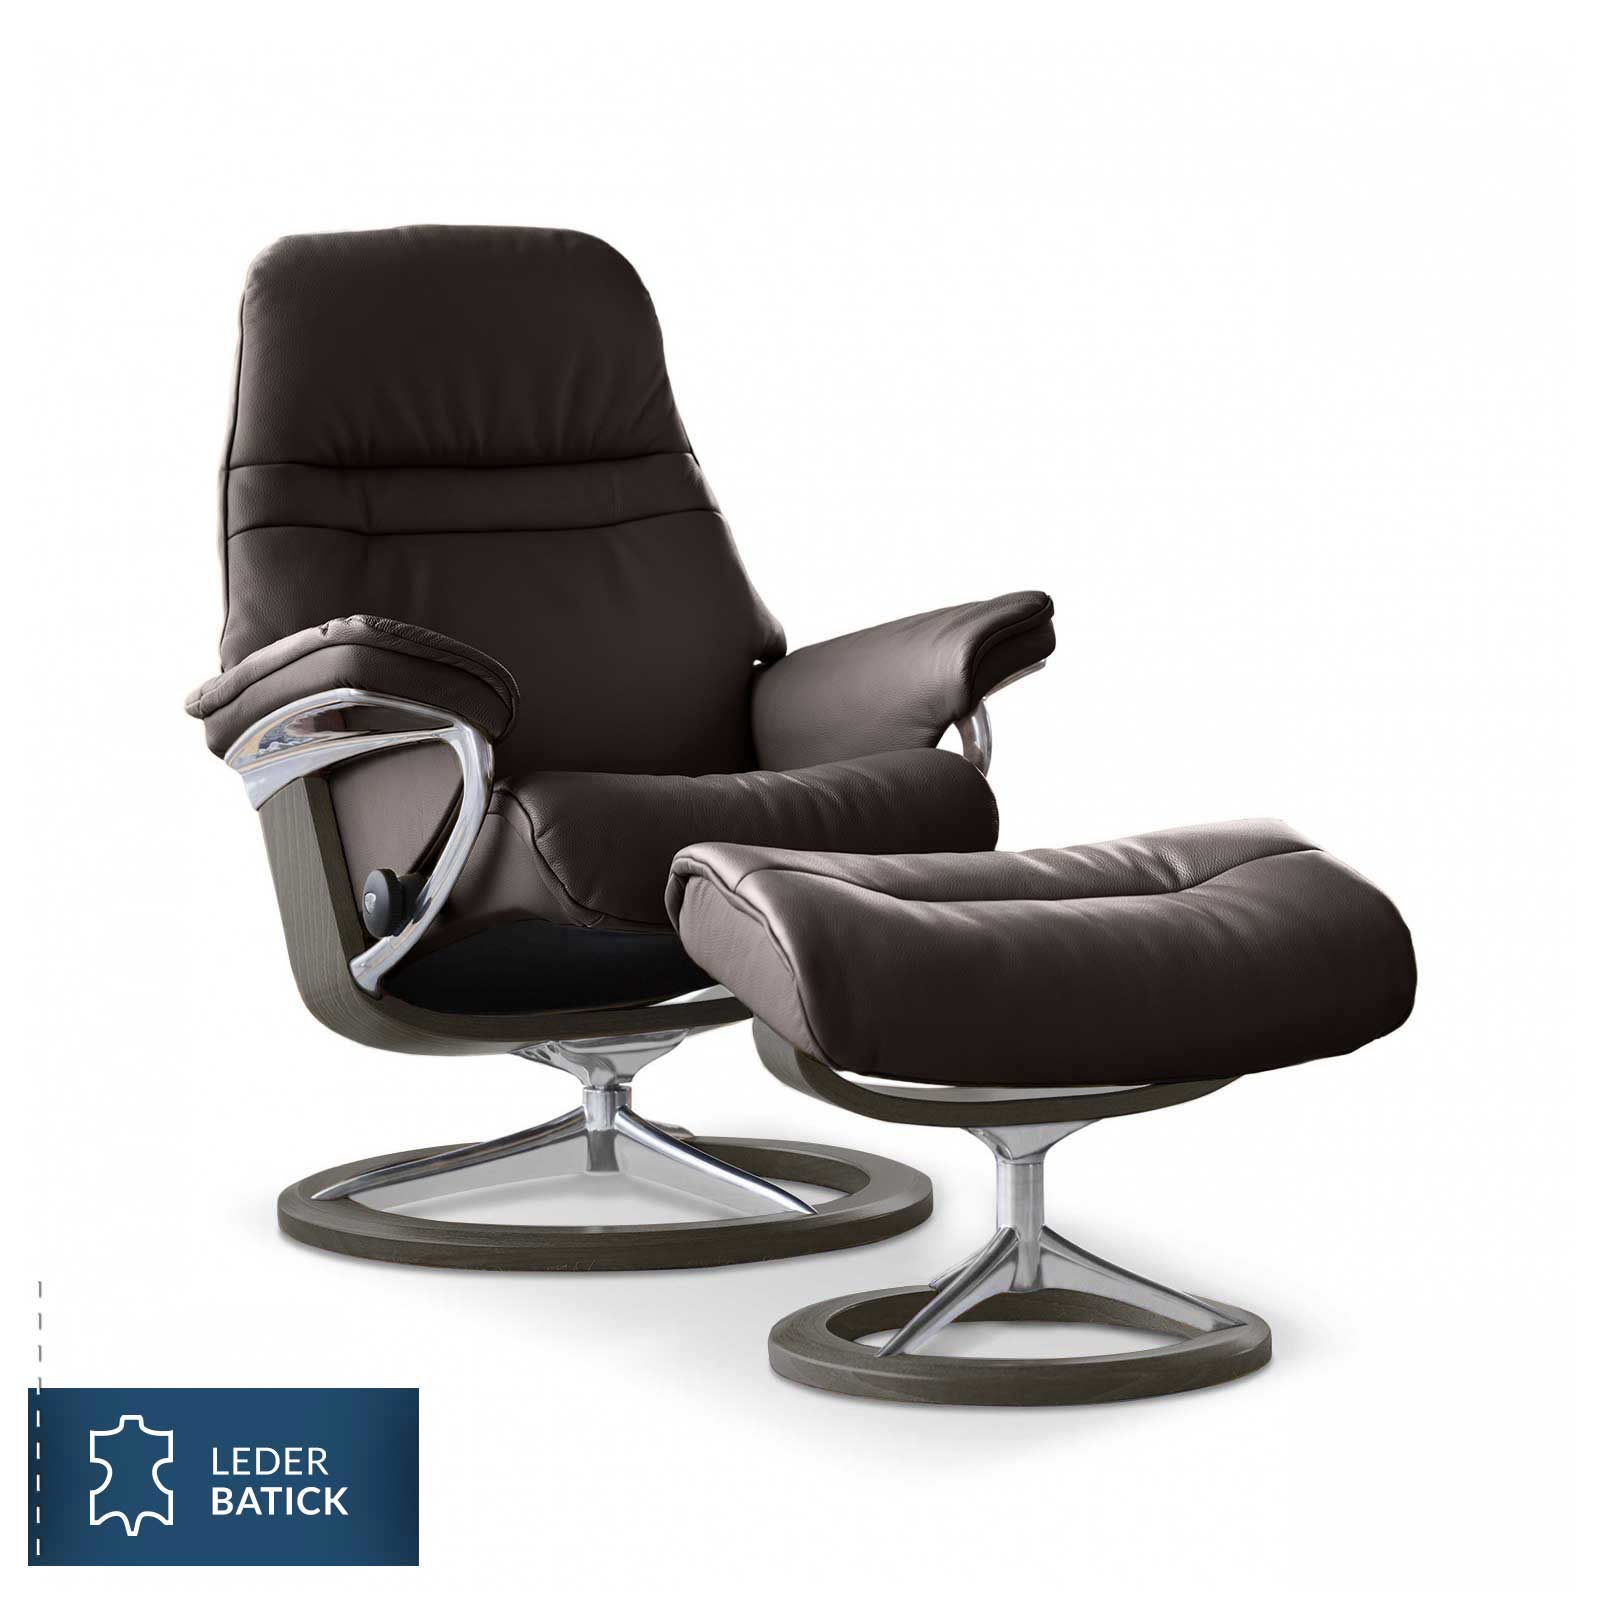 stressless sunrise batick braun signature hocker stressless. Black Bedroom Furniture Sets. Home Design Ideas